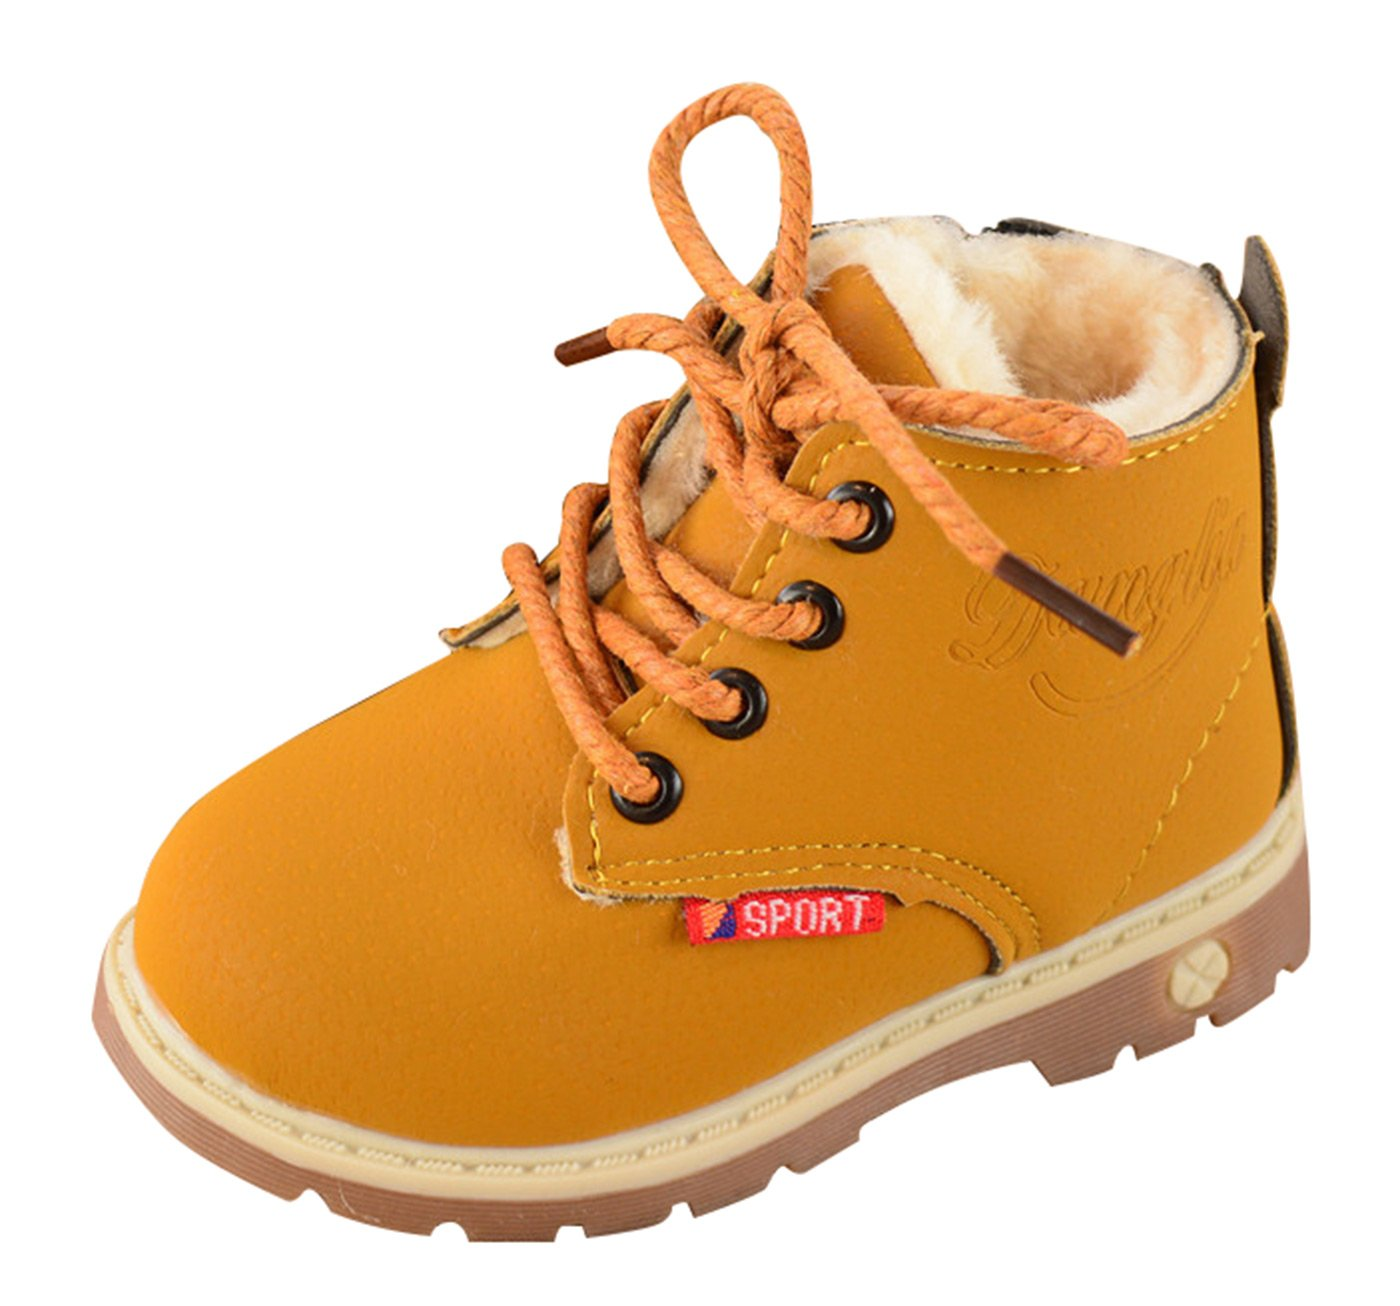 Happy Cherry AutumnWinter Comfort Boots LaceUp Martin Boots Lace up High Top Ankle Shoes for Baby Boys Girls Yellow Size 22